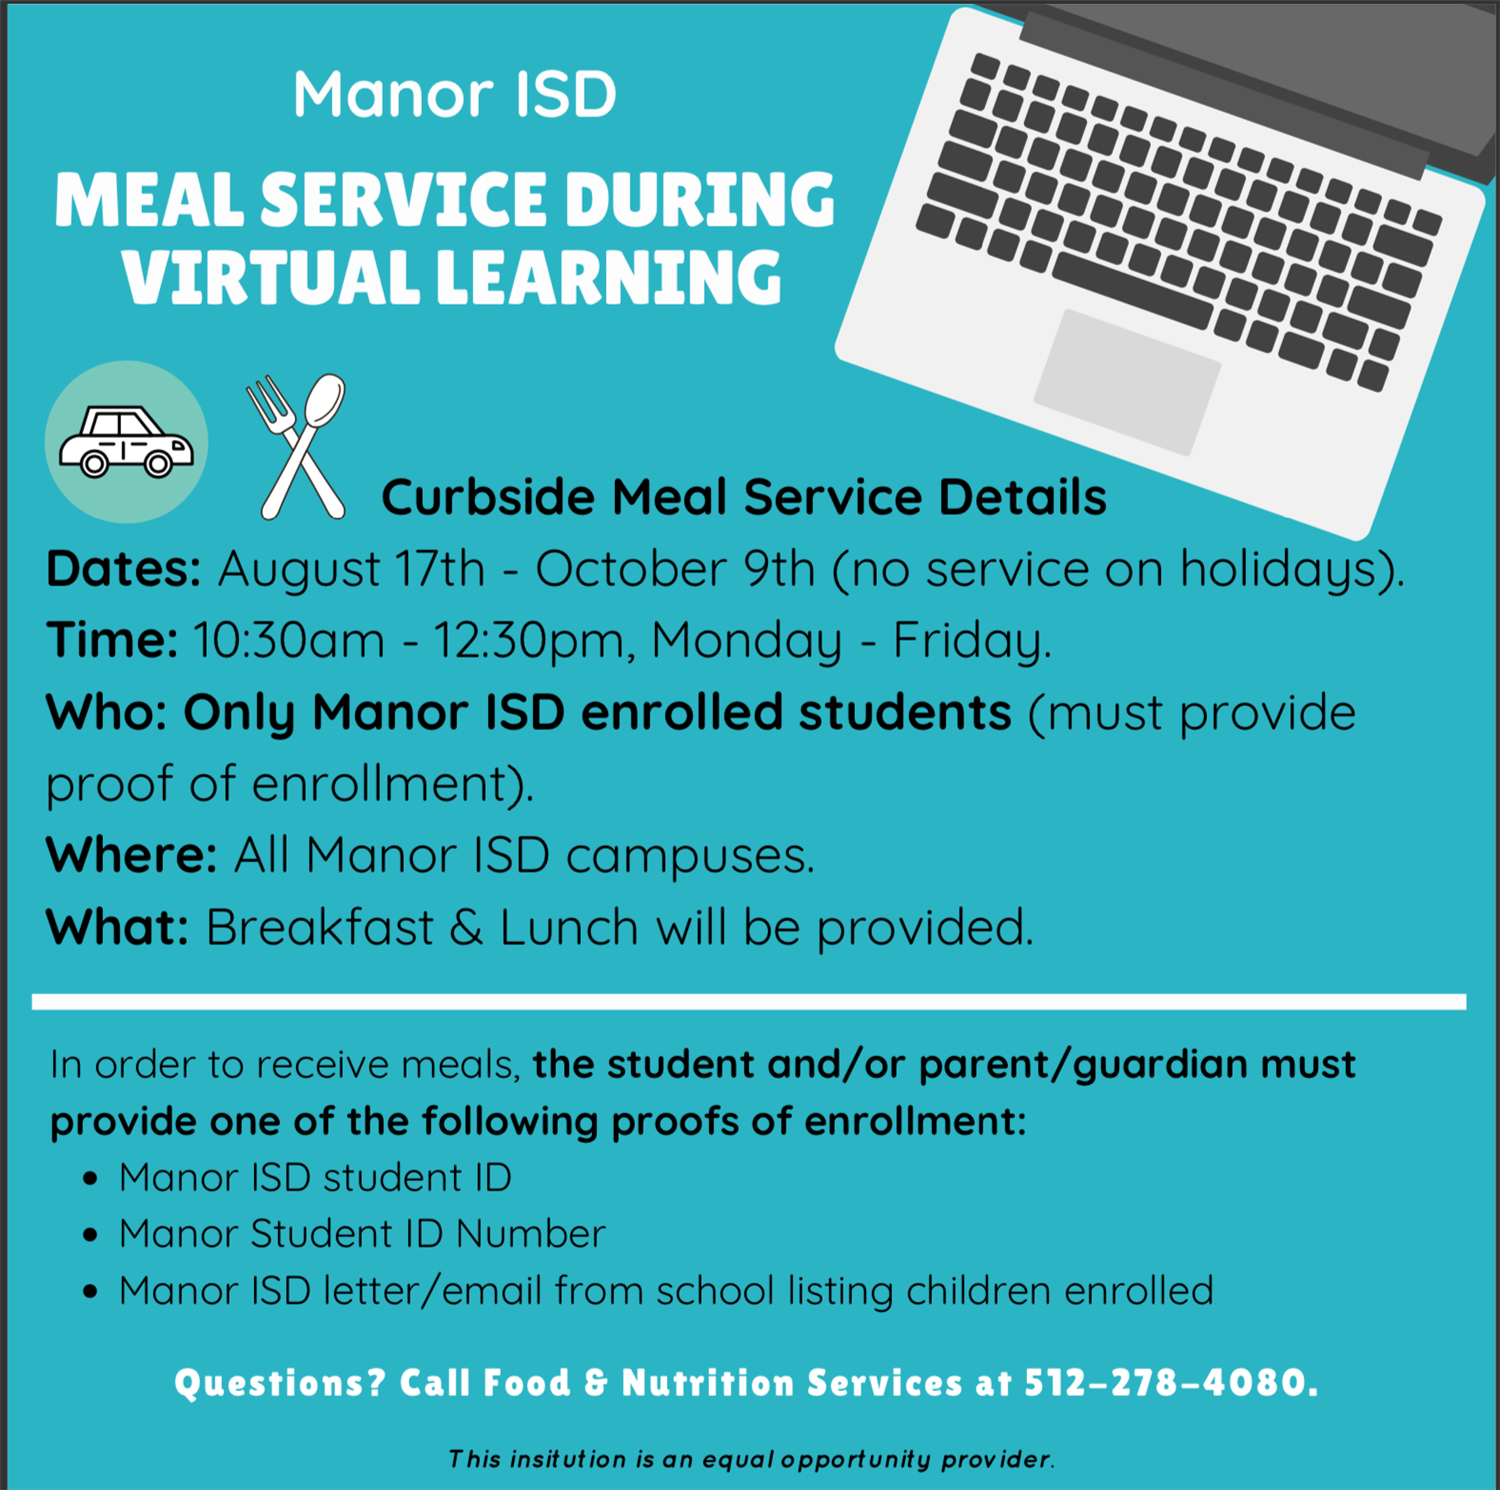 Manor ISD Food Service During Virtual Learning